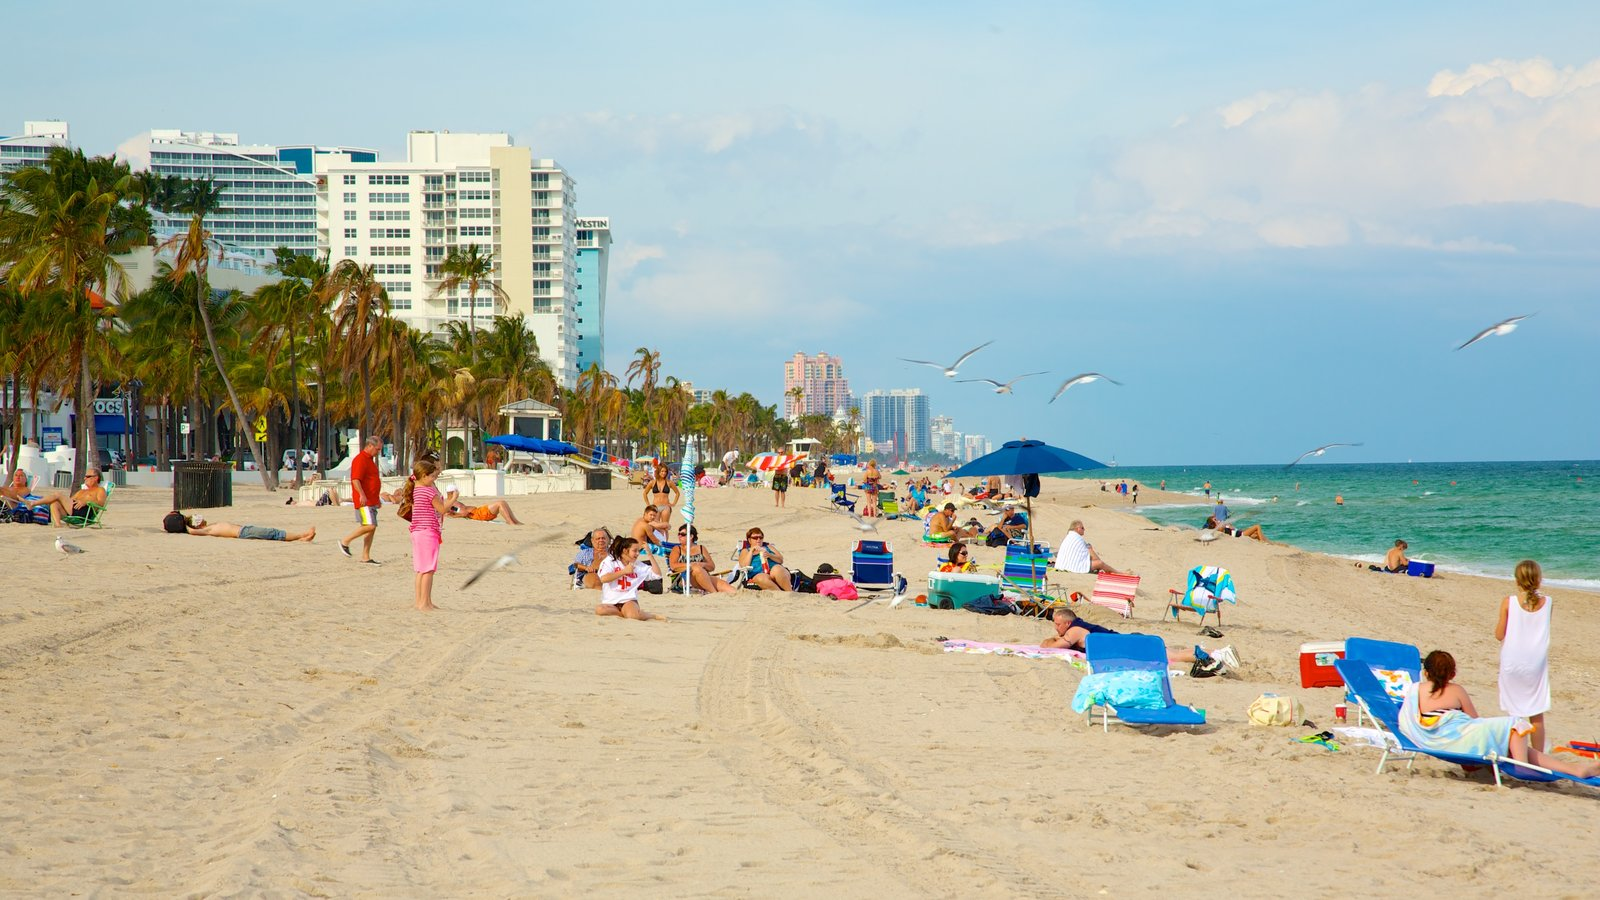 Fort Lauderdale Beach Pictures View Photos  Images Of -7570